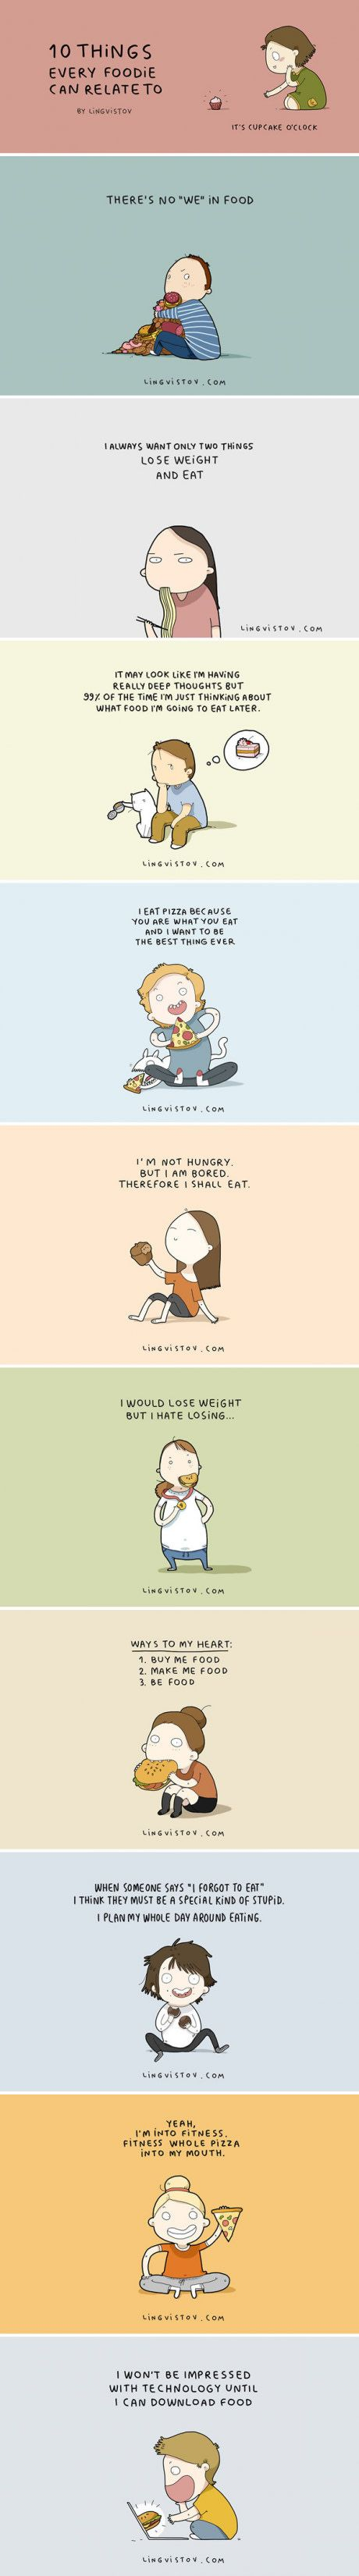 10 Things Every Foodie Will Understand (By Lingvistov)